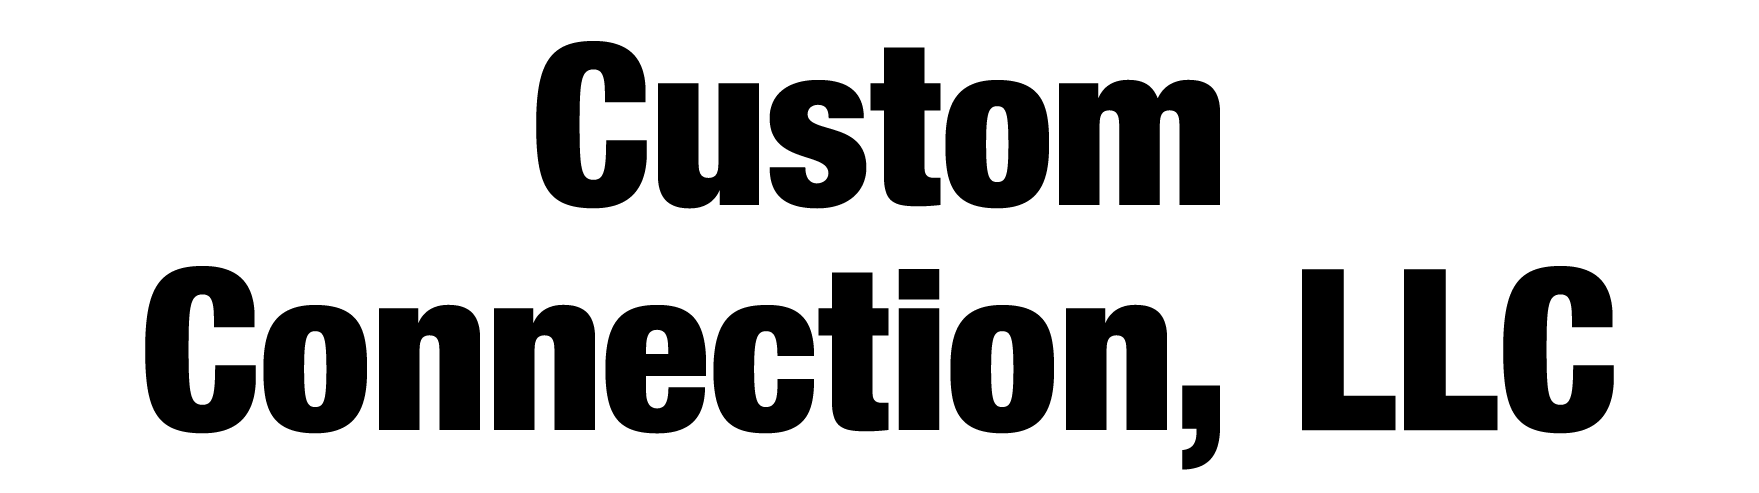 Custom Connection LLC